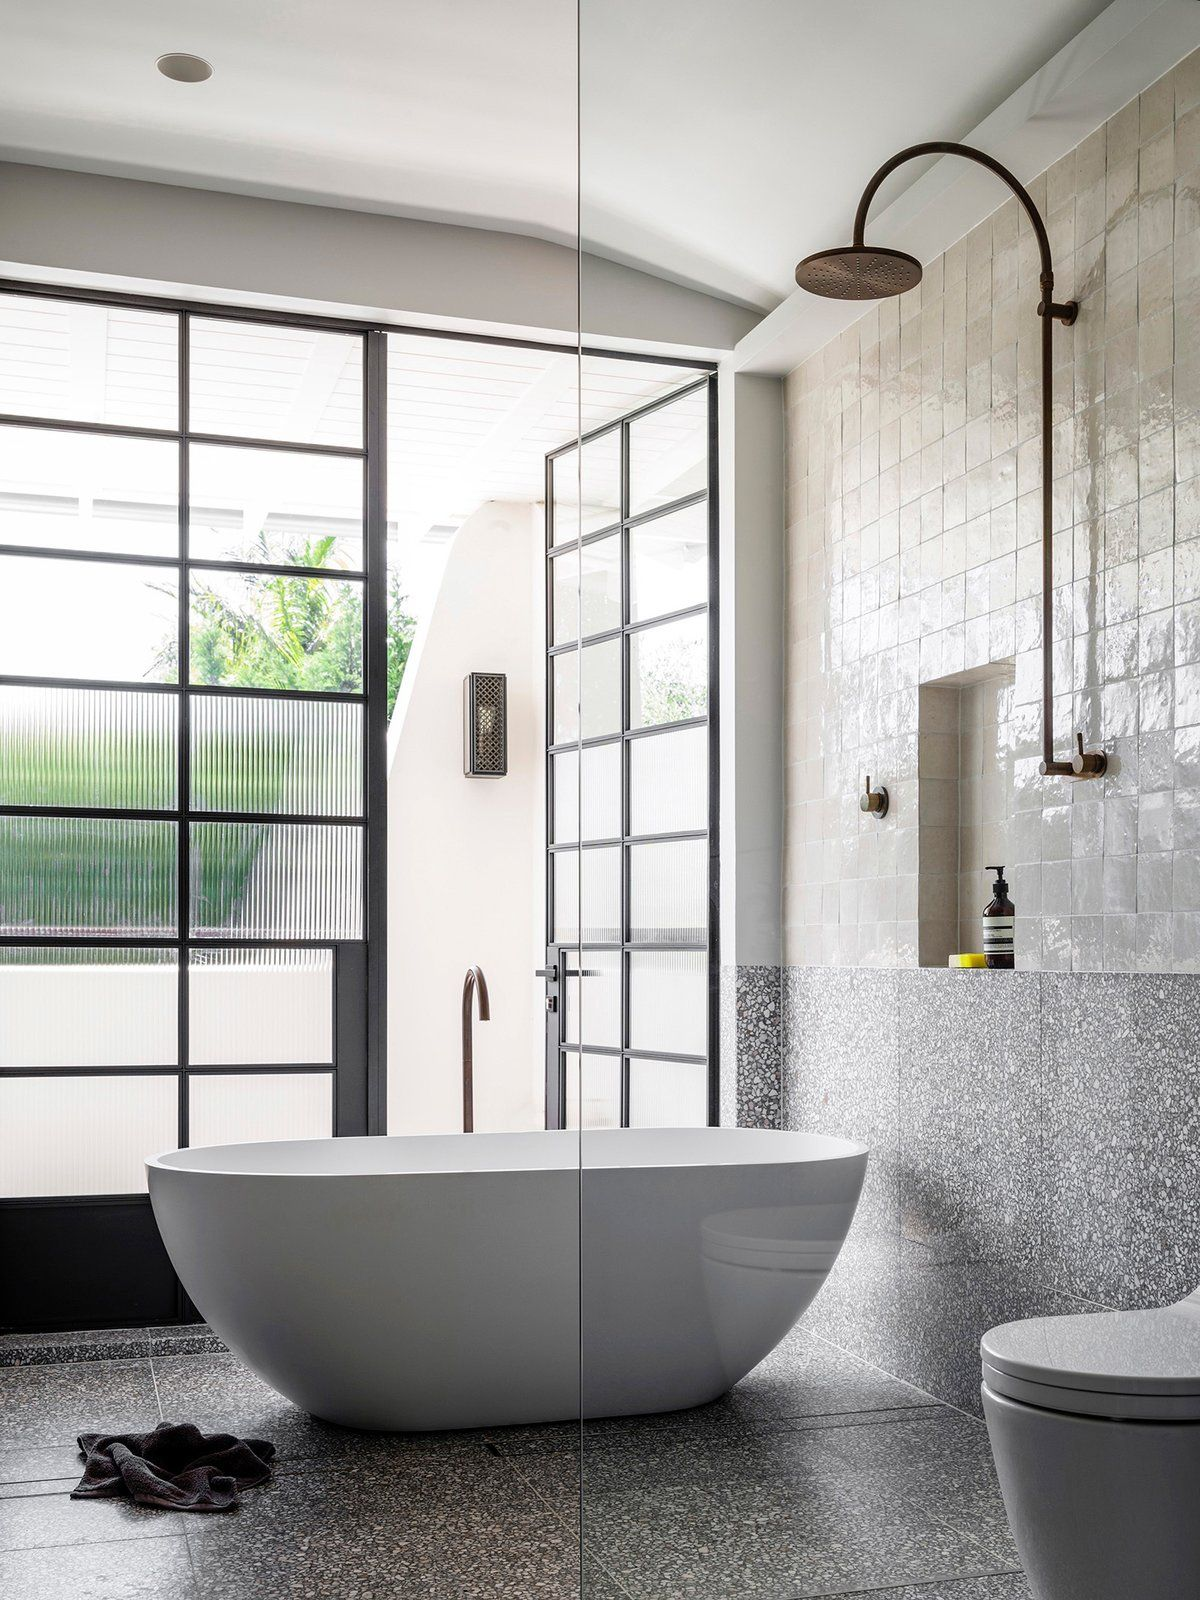 Bath Room Freestanding Tub Open Shower Soaking Tub And One Piece Toilet Photo 36 Of 40 In 40 Modern Bathtub Modern Bathroom Contemporary Bathroom Designs